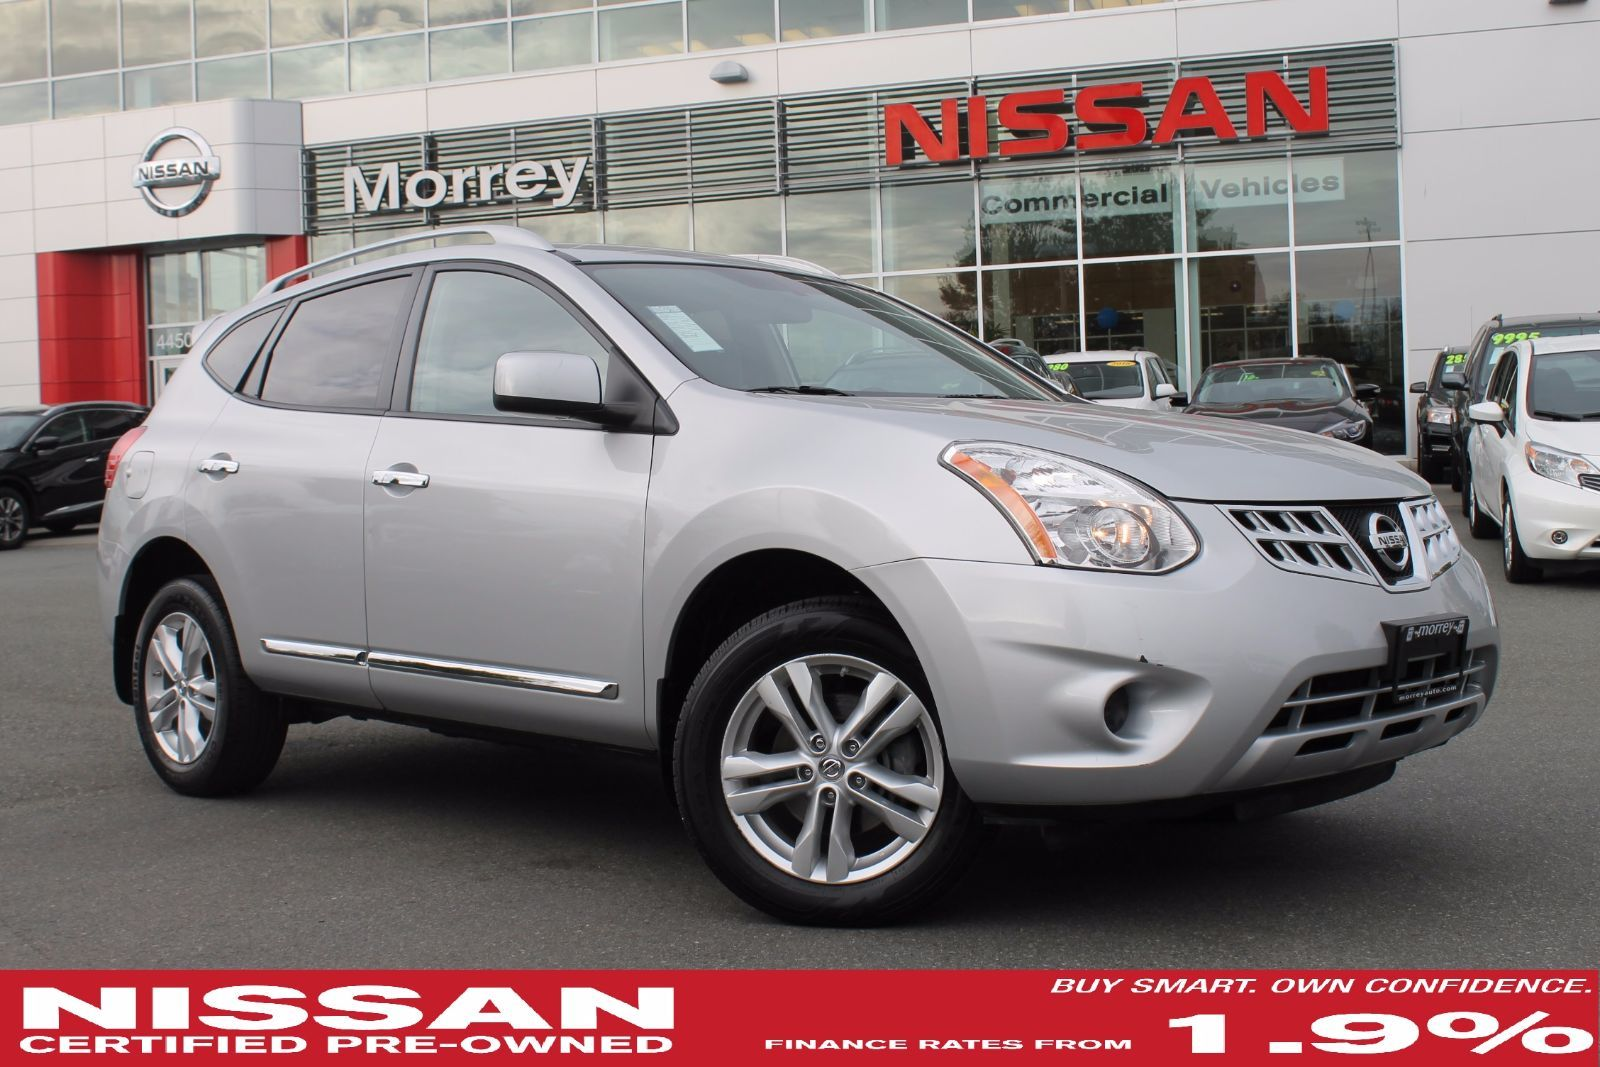 2013 nissan rogue sv auto backup camera low kms for sale nissan burnaby. Black Bedroom Furniture Sets. Home Design Ideas